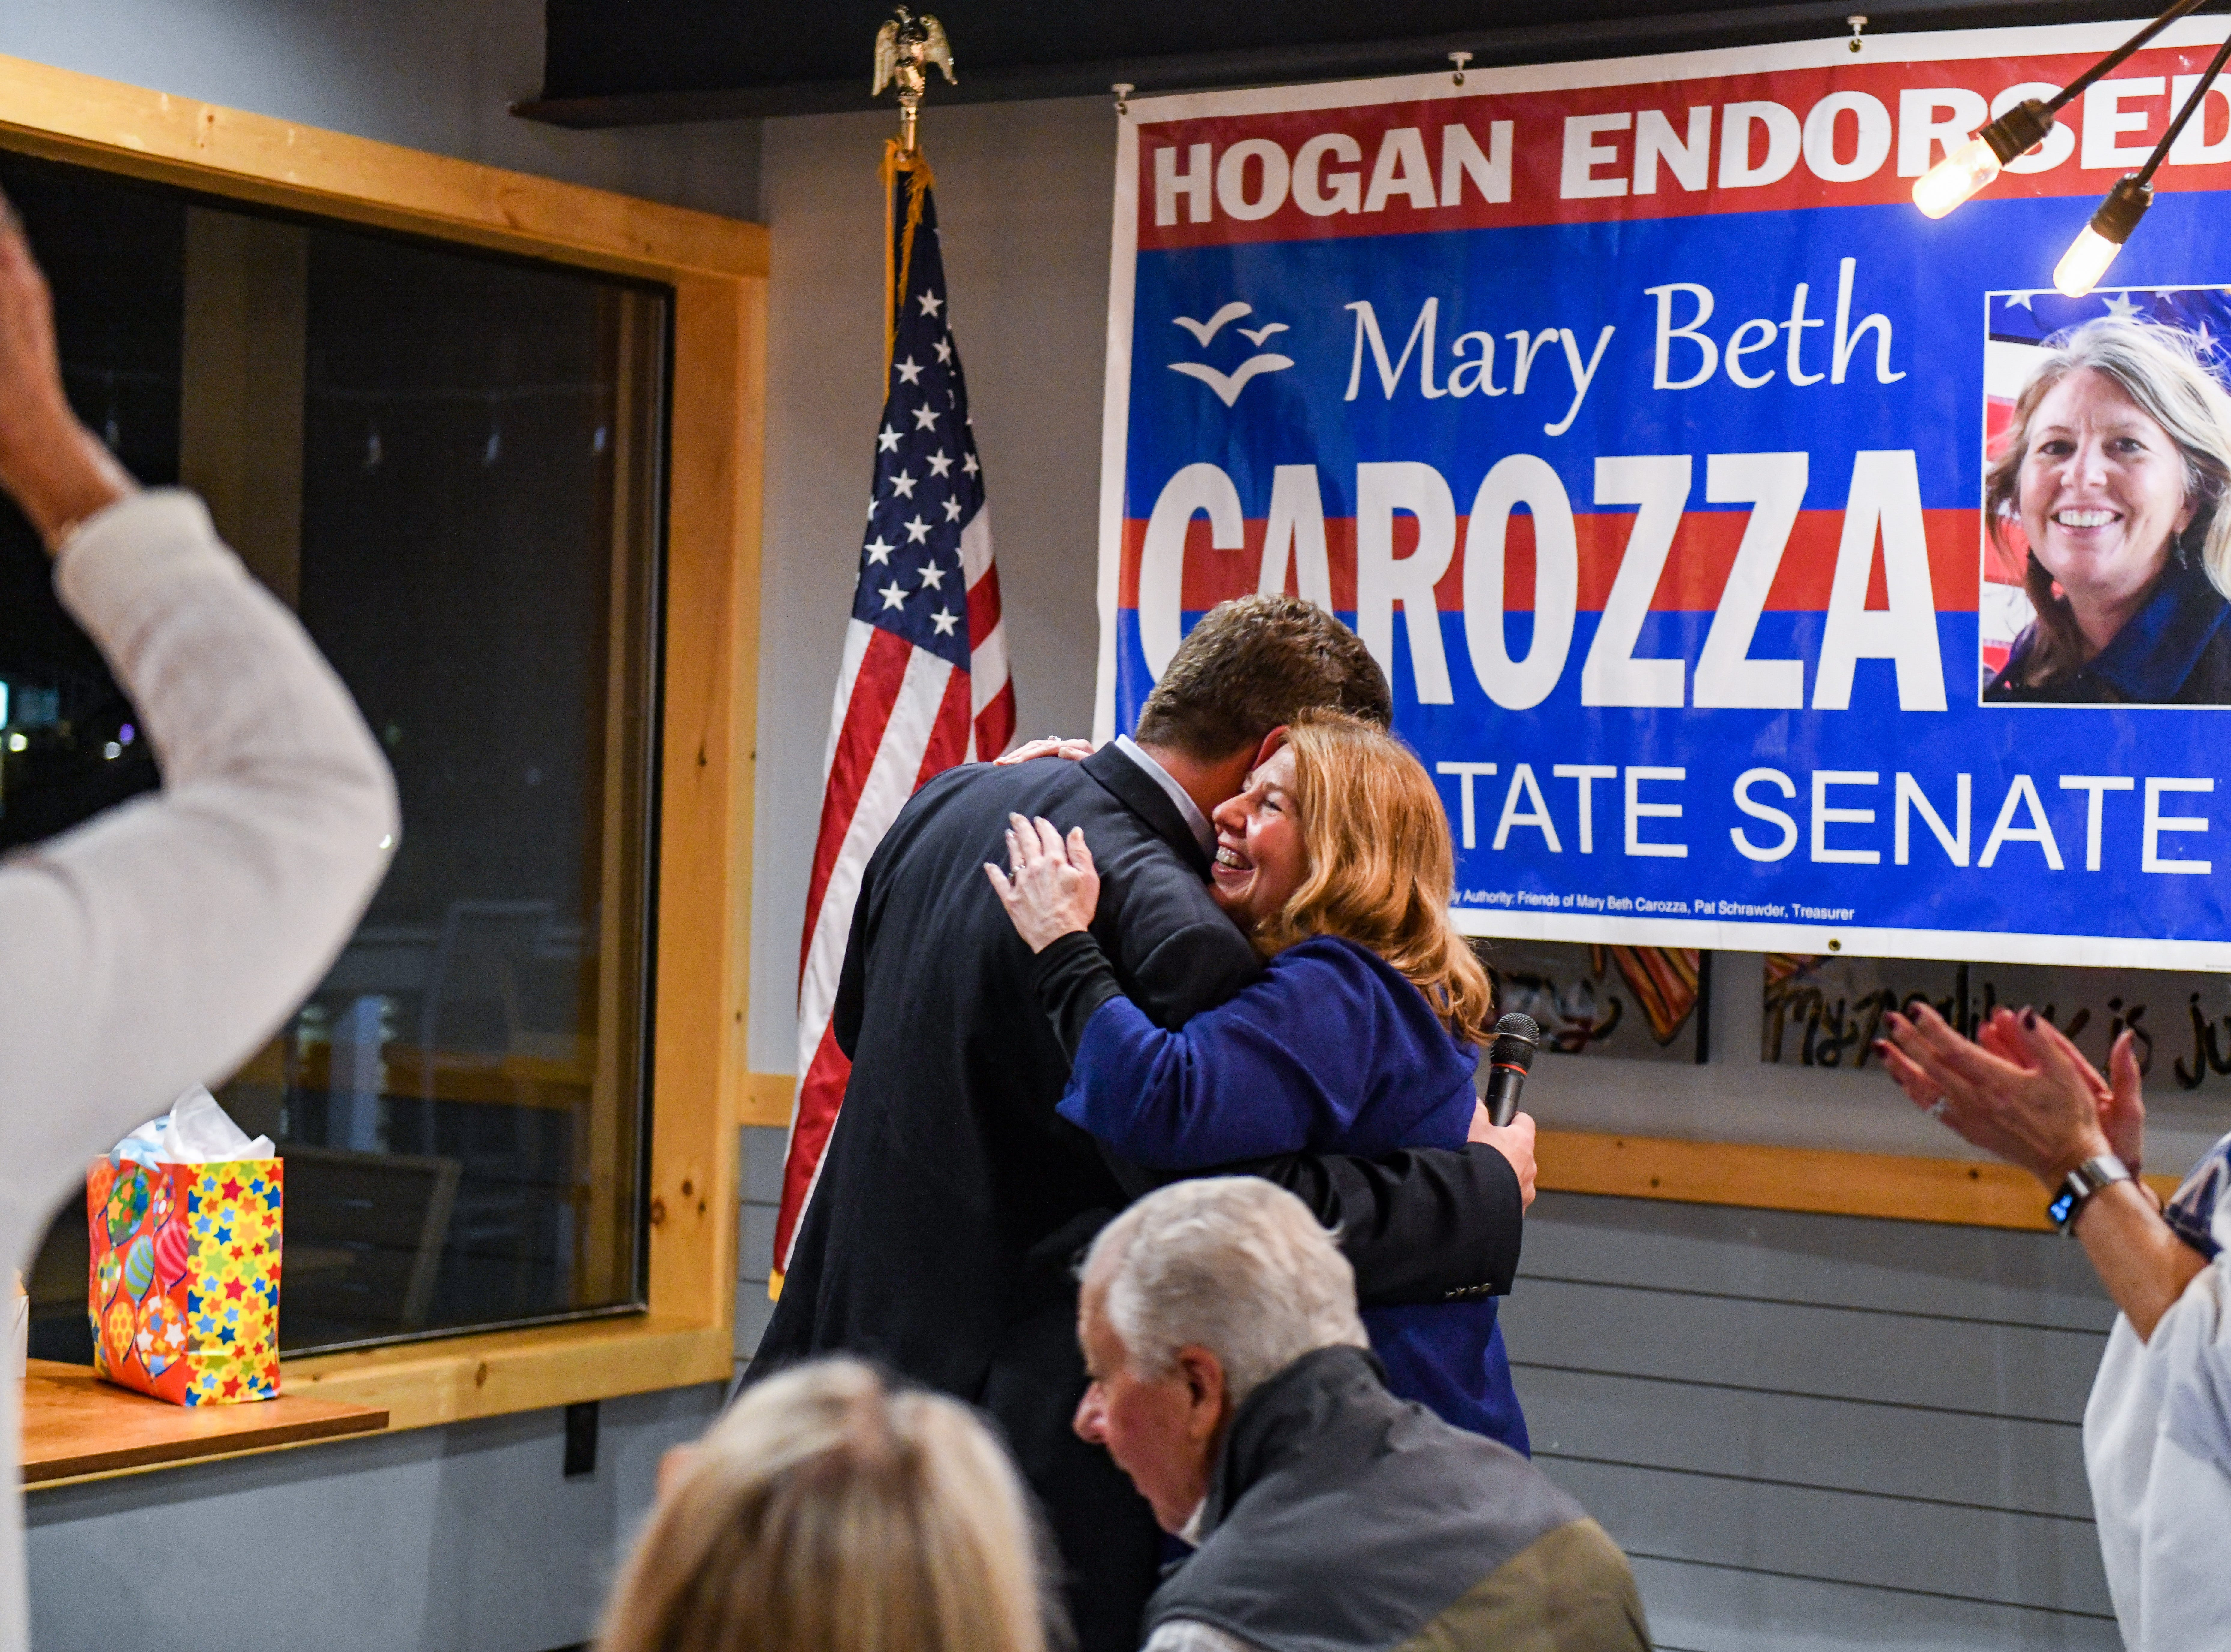 Newly elected Maryland delegate Wayne Hartman introduces Republican Mary Beth Carozza shortly after she was elected the new Maryland state senator in District 38 on Tuesday, Nov 6, 2018.